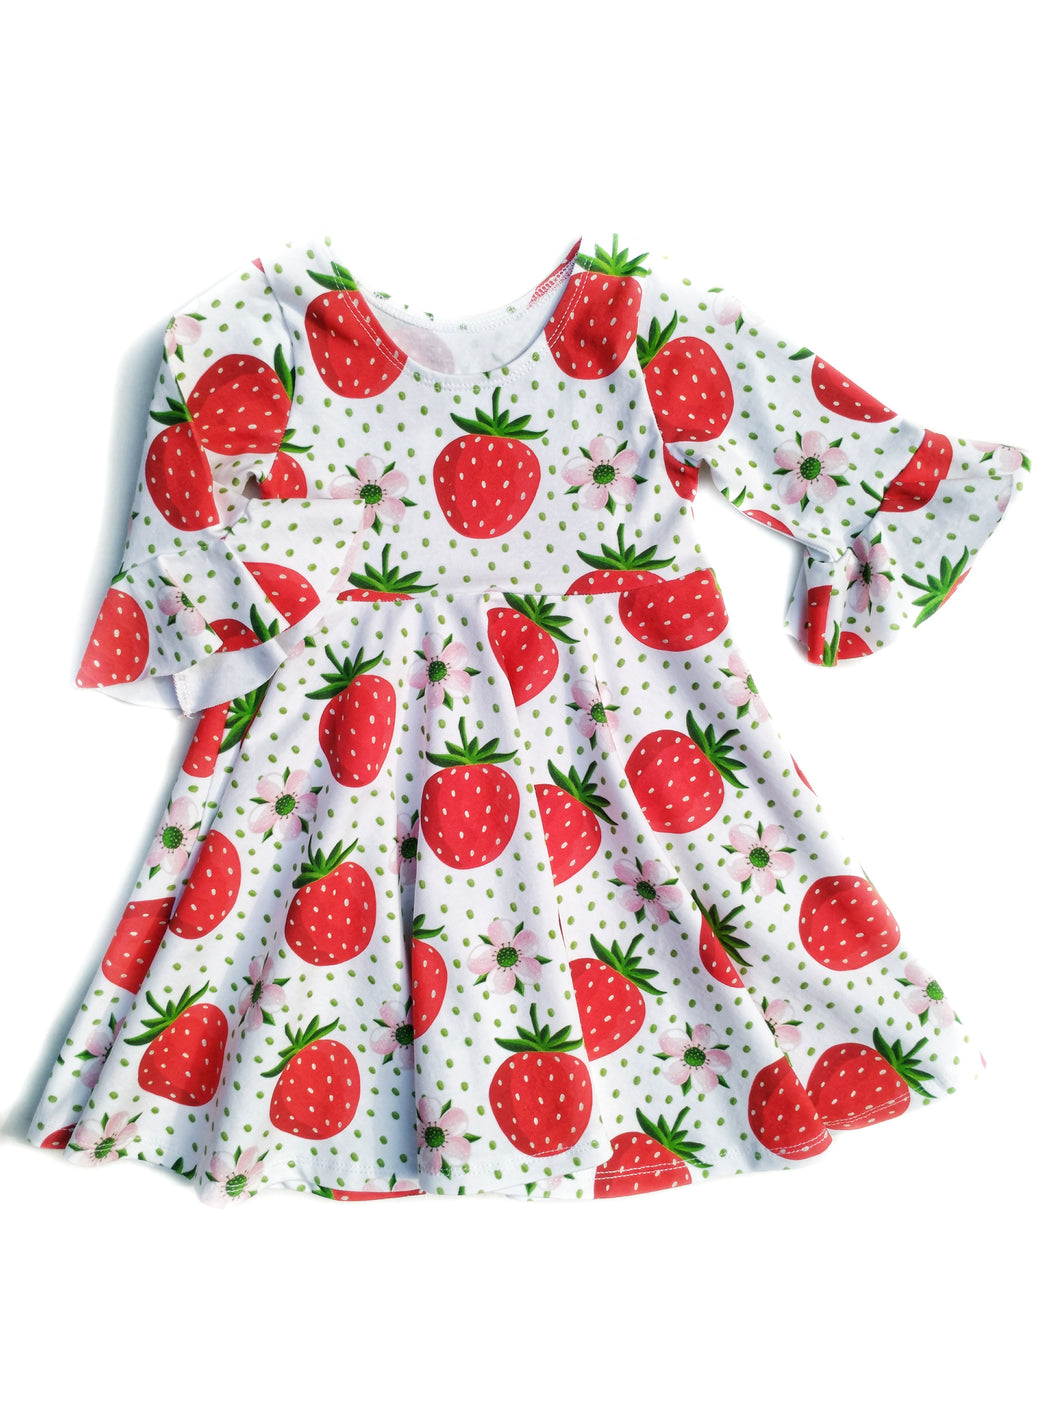 Infinity Dress - Summer Strawberry - size 6/9 to 5T (Leave your size in order comments!!)